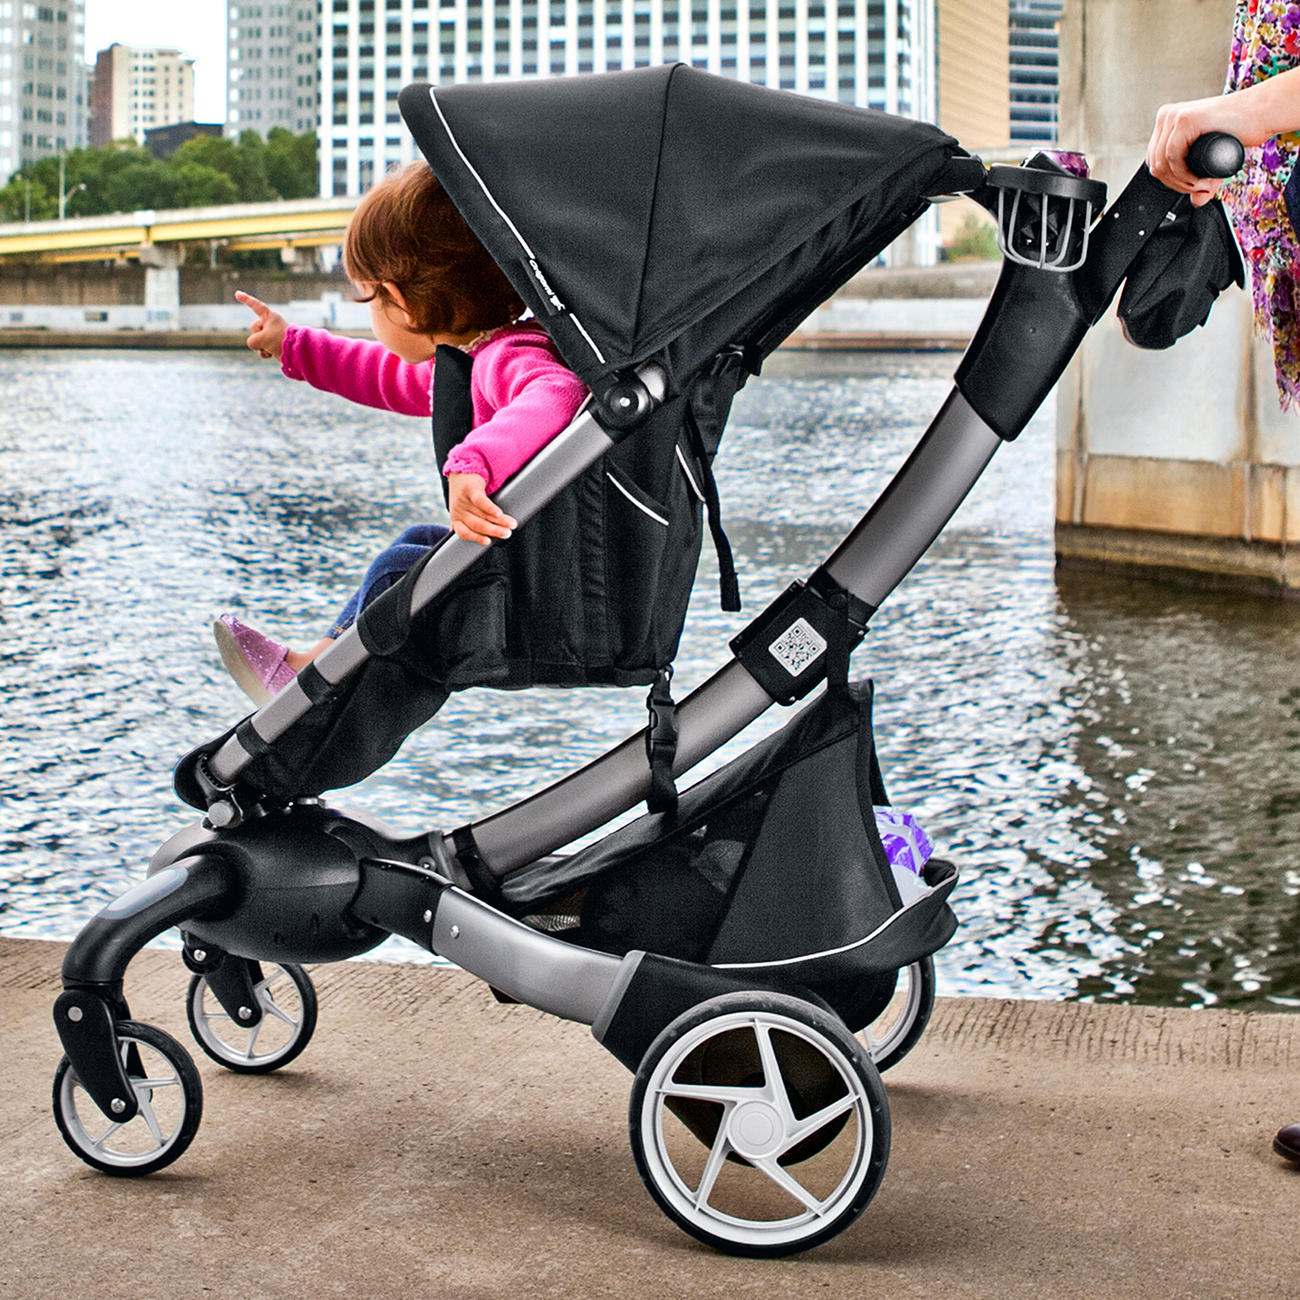 buy origami comfort stroller 3 year product guarantee. Black Bedroom Furniture Sets. Home Design Ideas